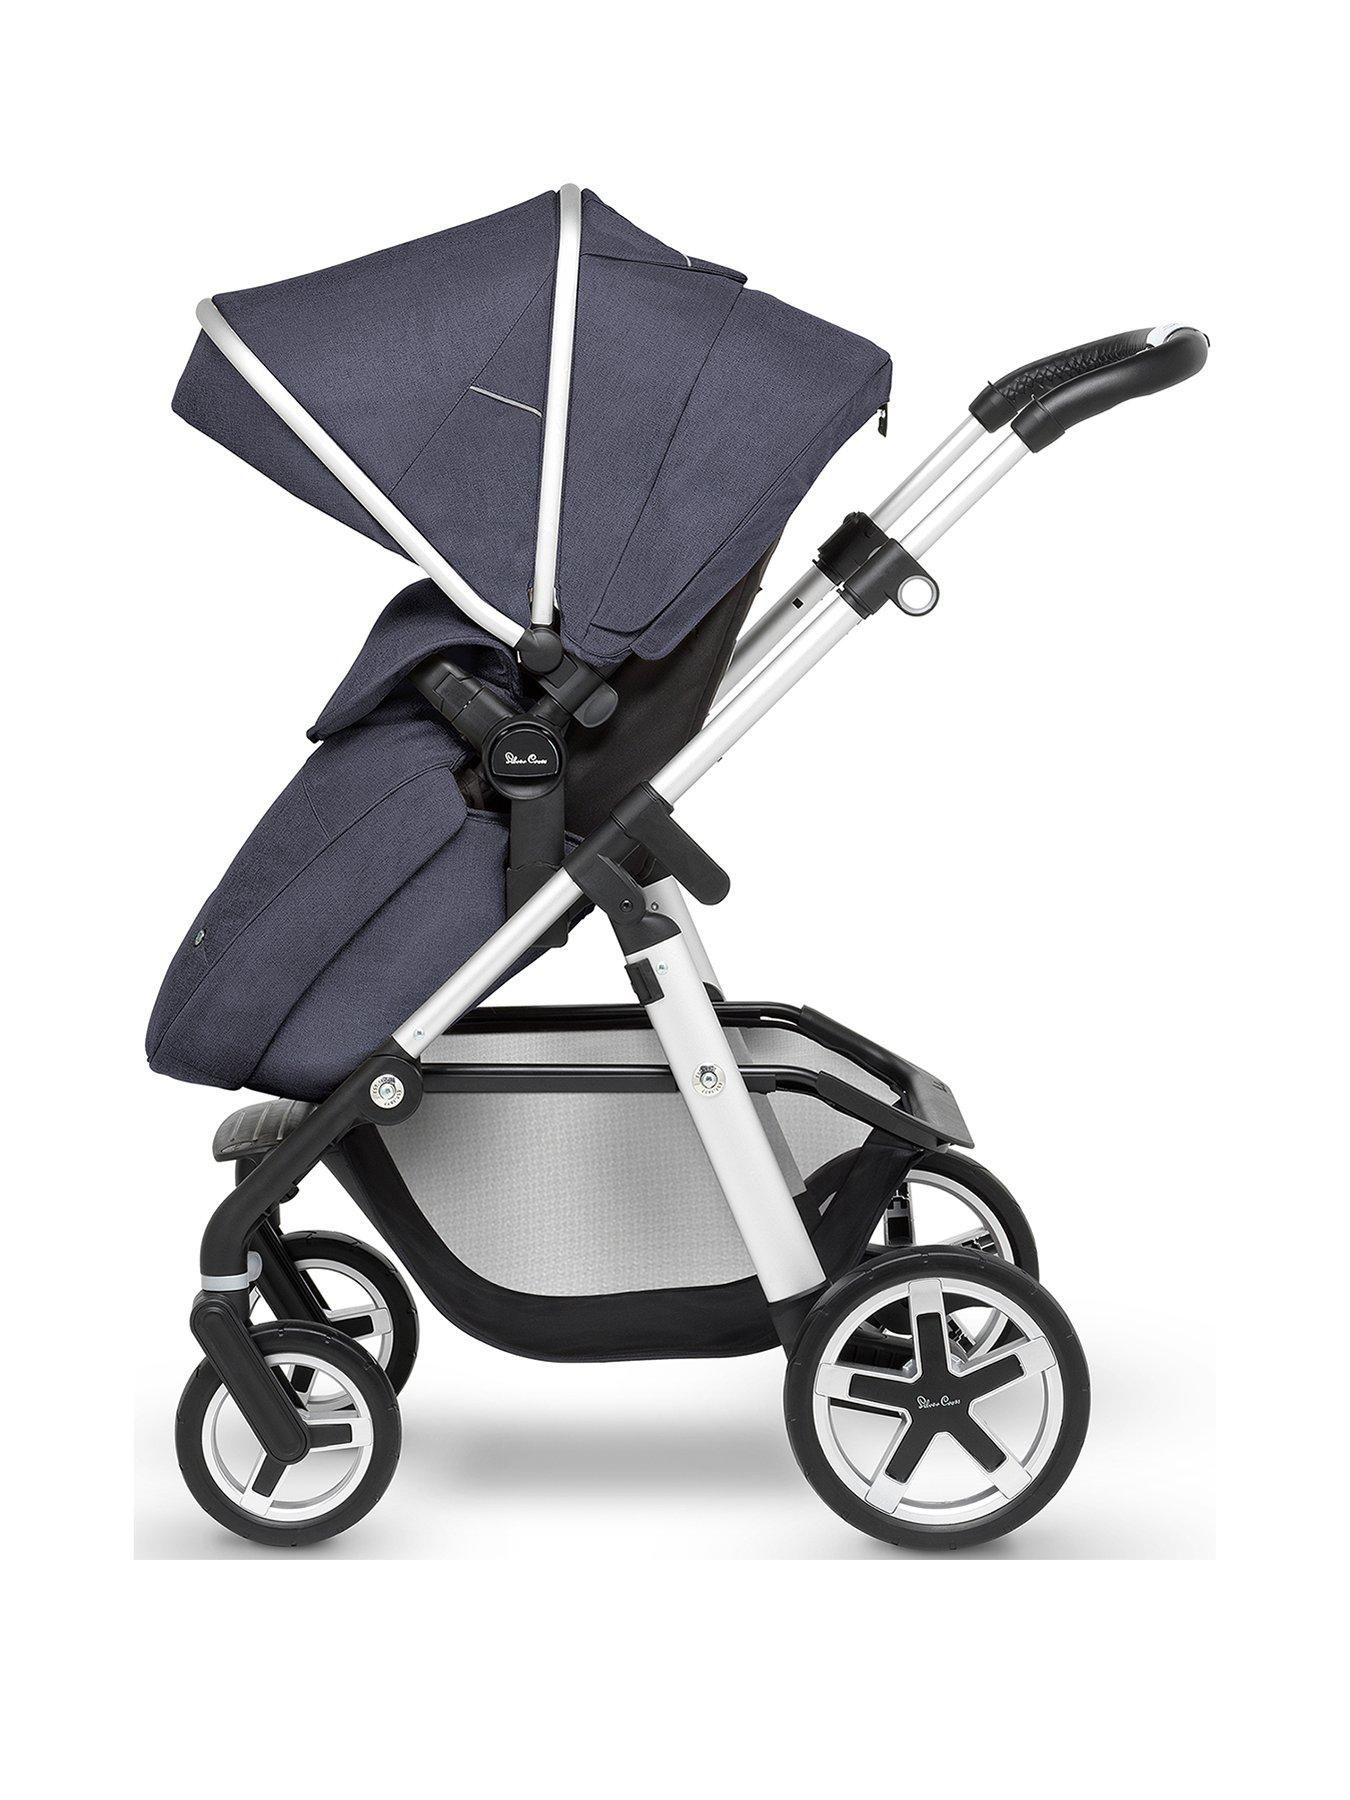 Pioneer 5 Piece Travel System Bundle (Pushchair, Carry